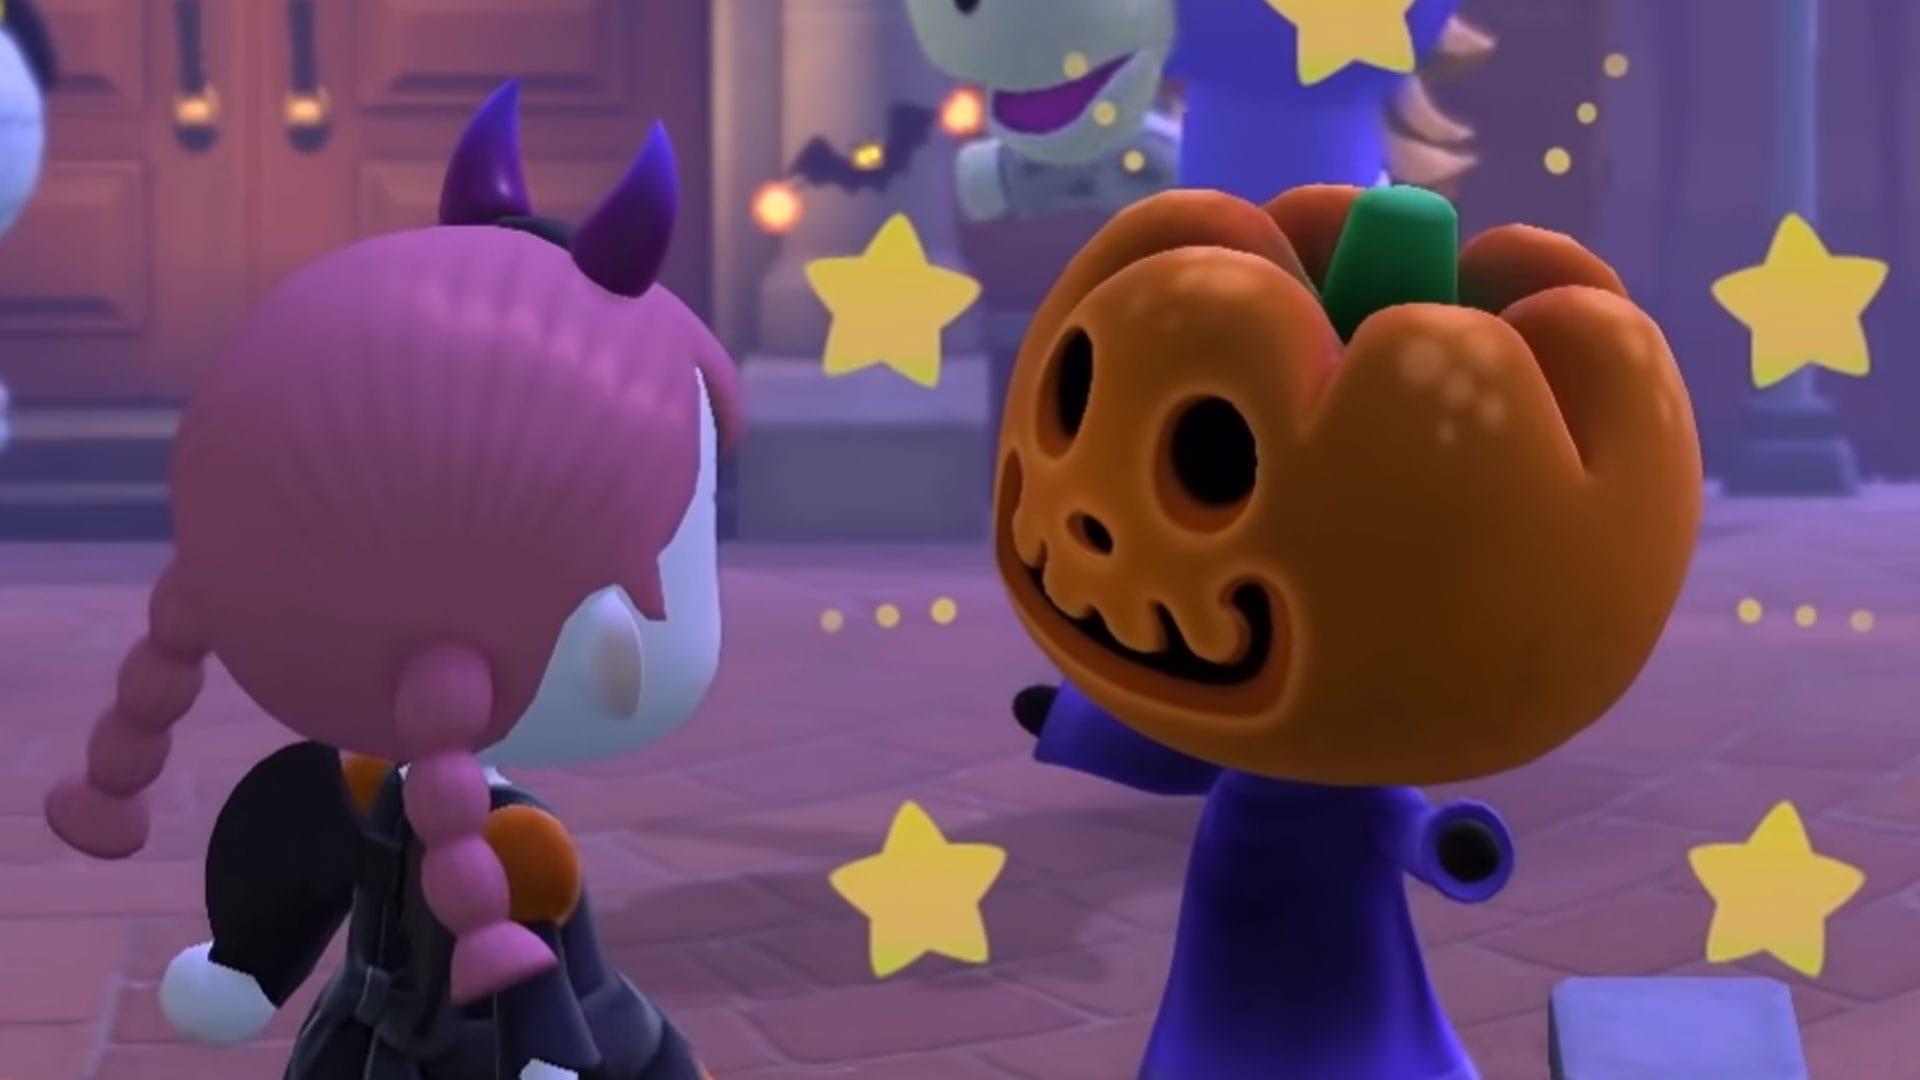 Animal Crossing Halloween designs